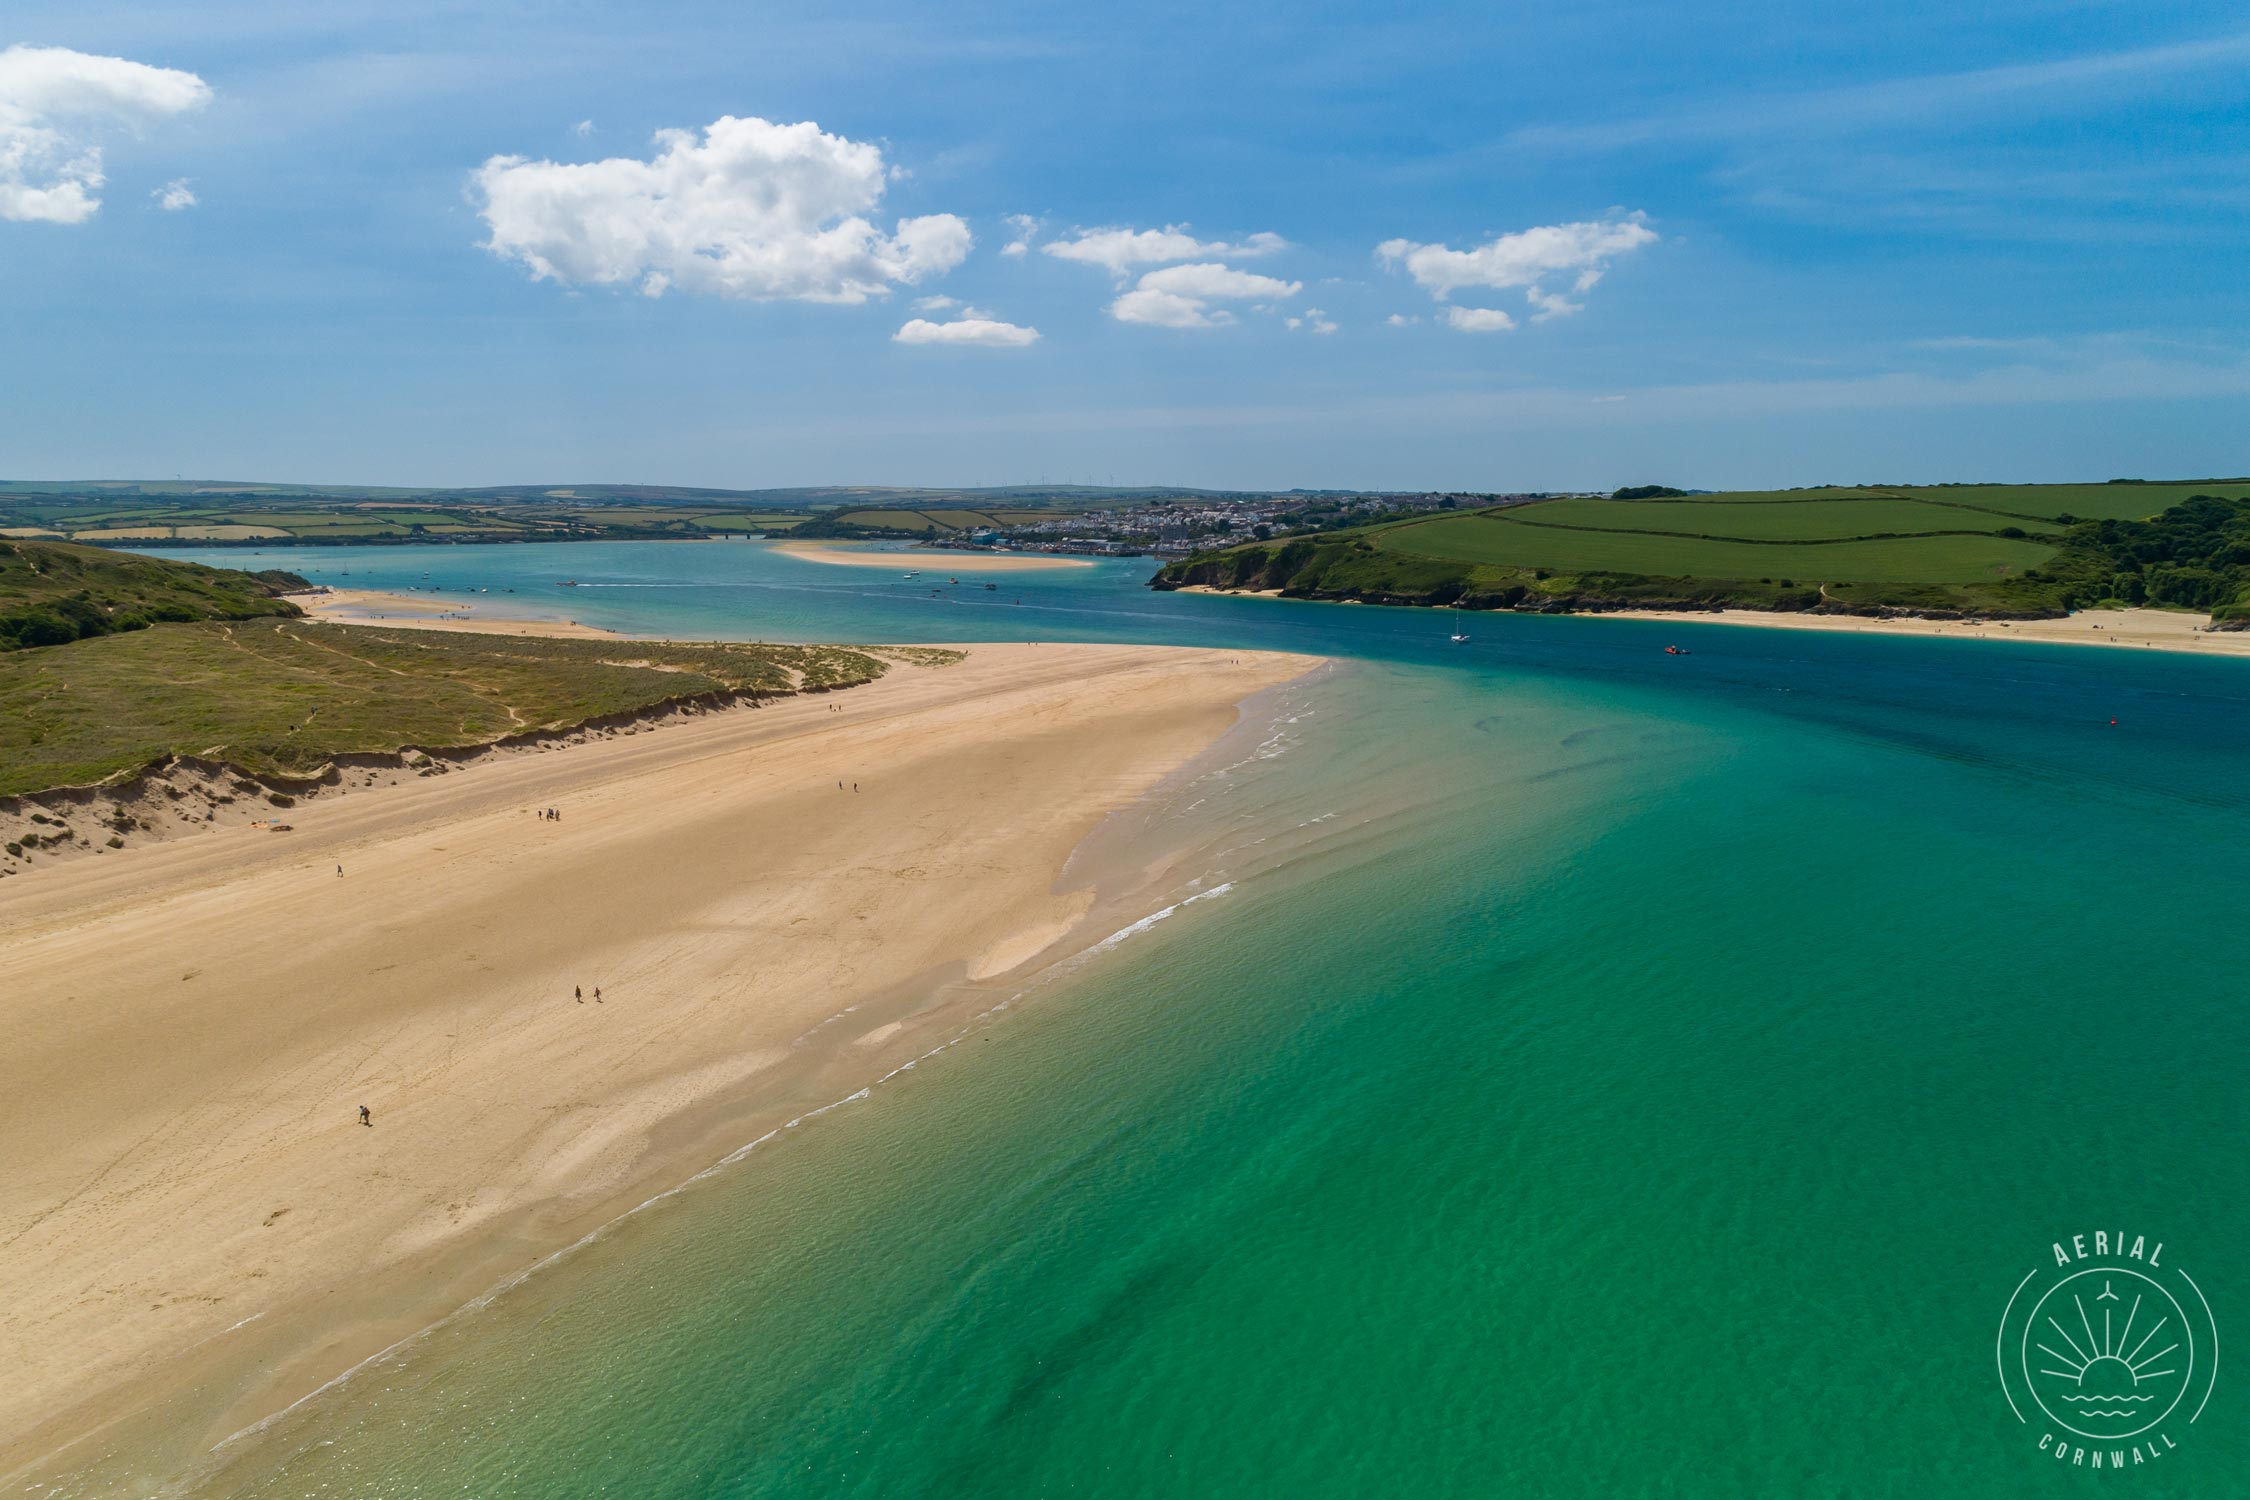 Location: Camel Estuary